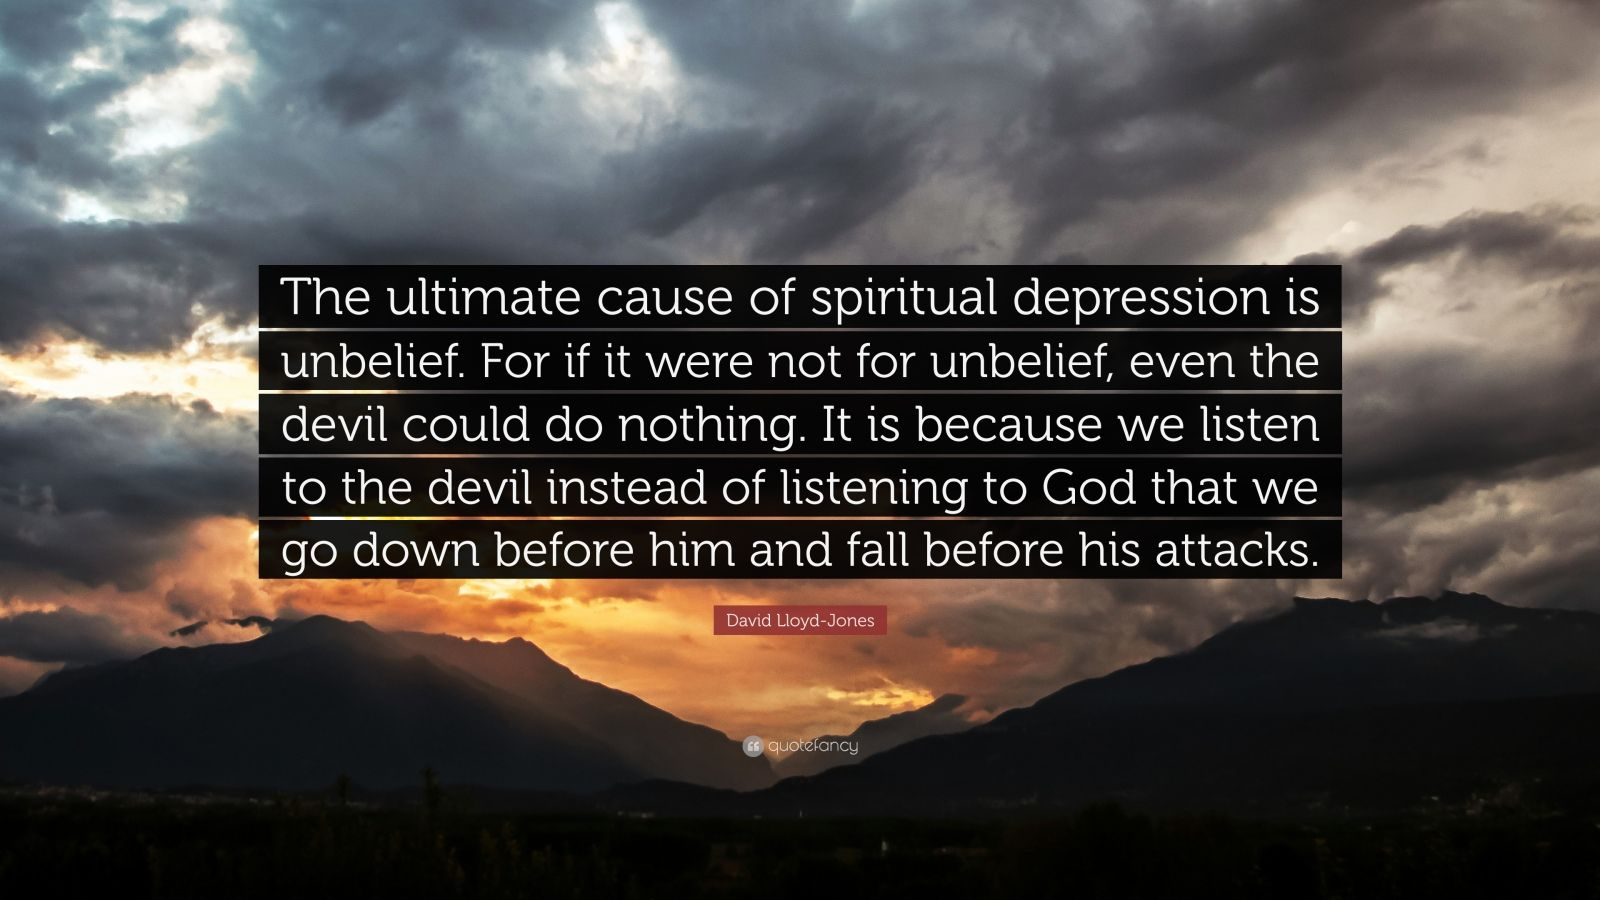 "David Lloyd-Jones Quote: ""The ultimate cause of spiritual depression is unbelief. For if it were not for unbelief, even the devil could do nothing. It is because we listen to the devil instead of listening to God that we go down before him and fall before his attacks."""